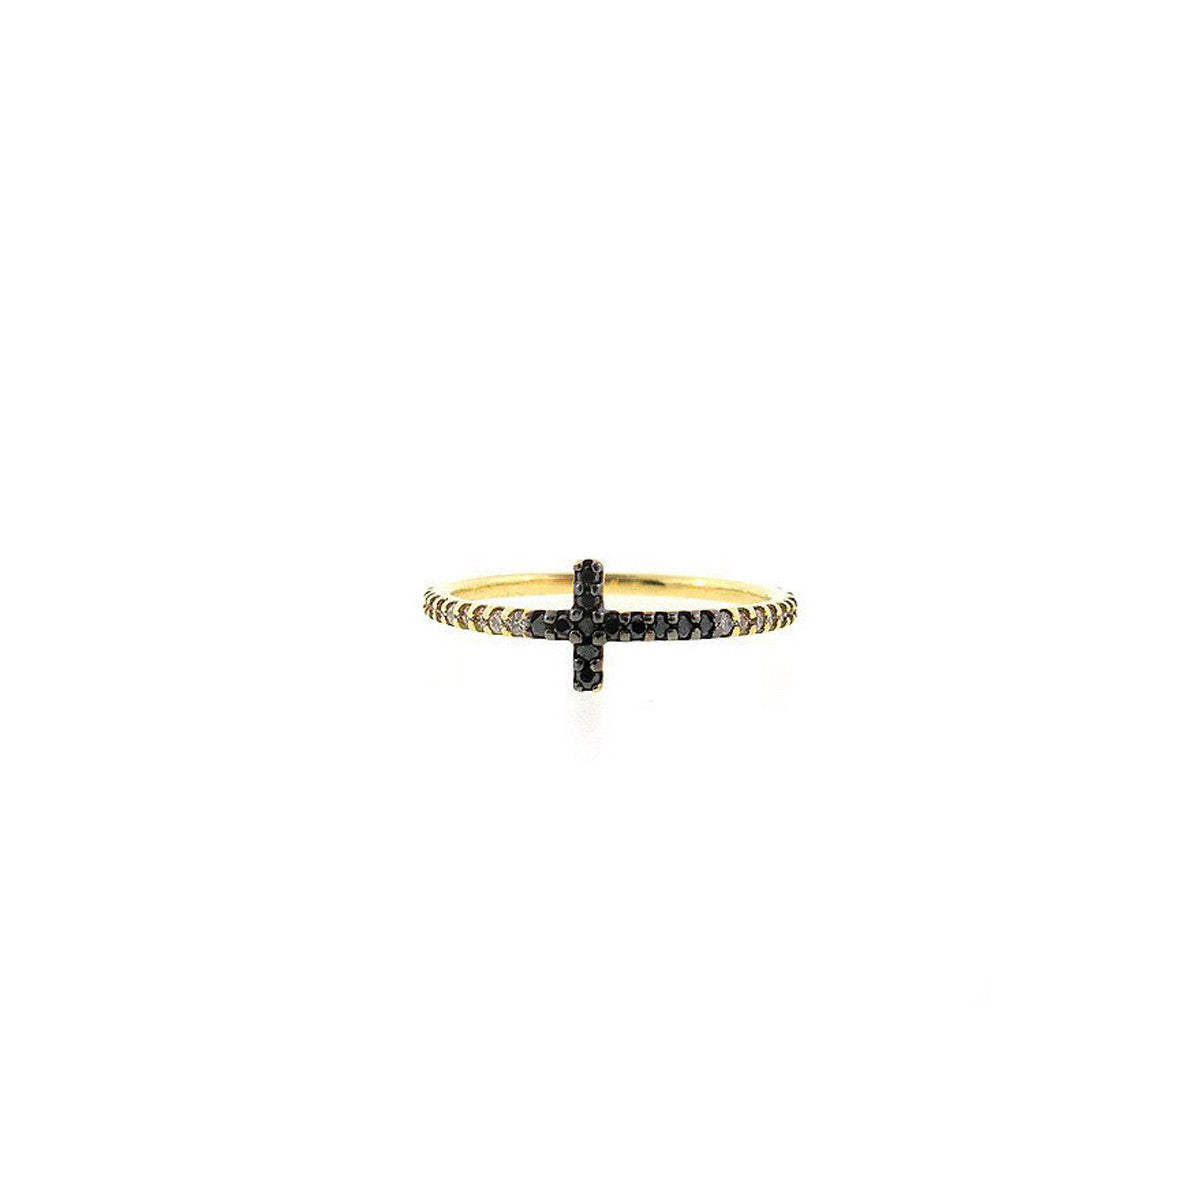 Sidways cross eternity ring for women